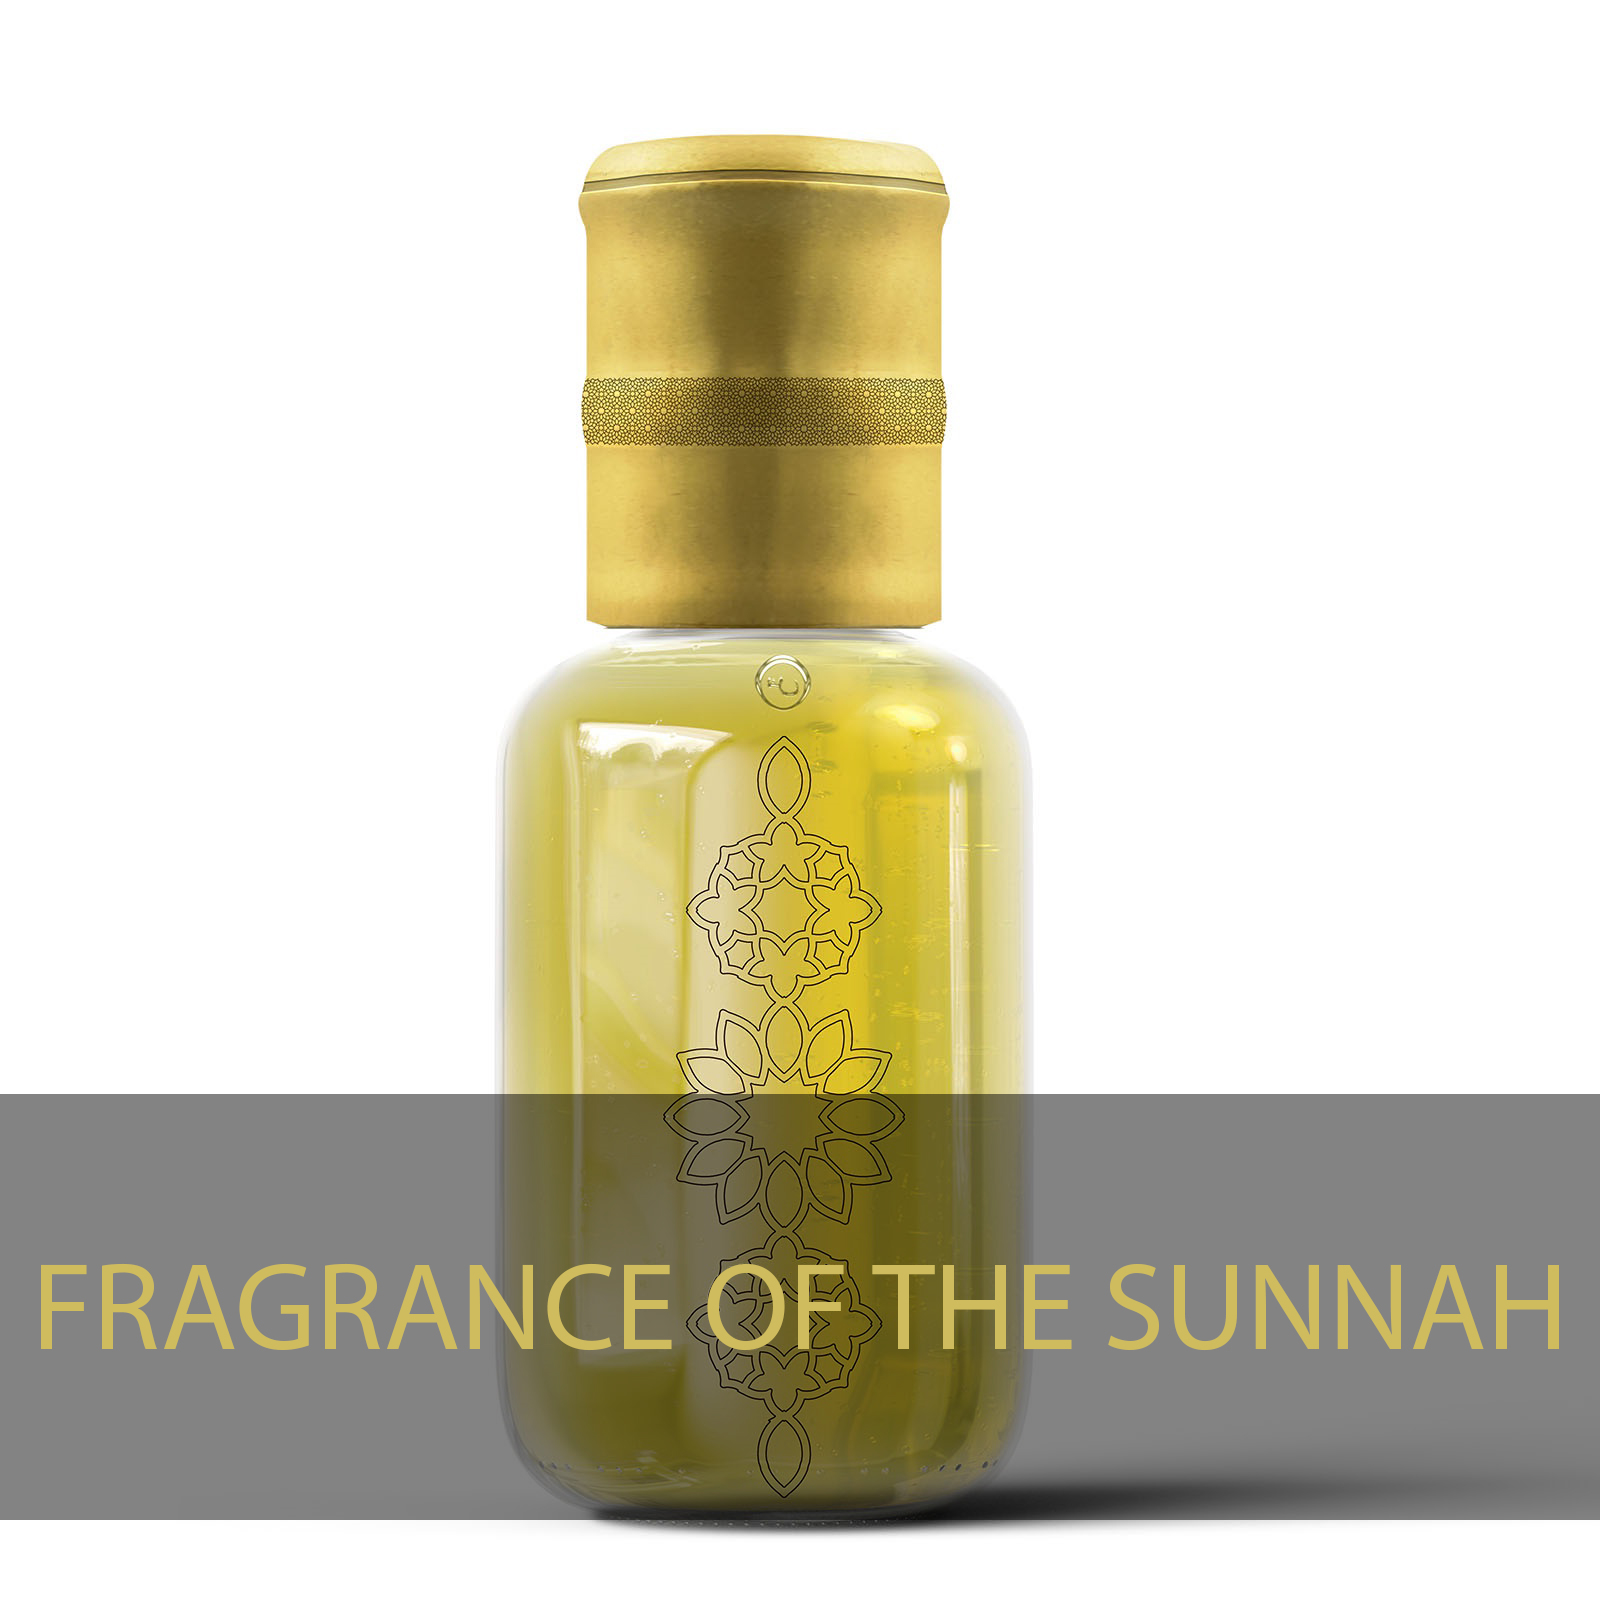 Fragrance of the Sunnah